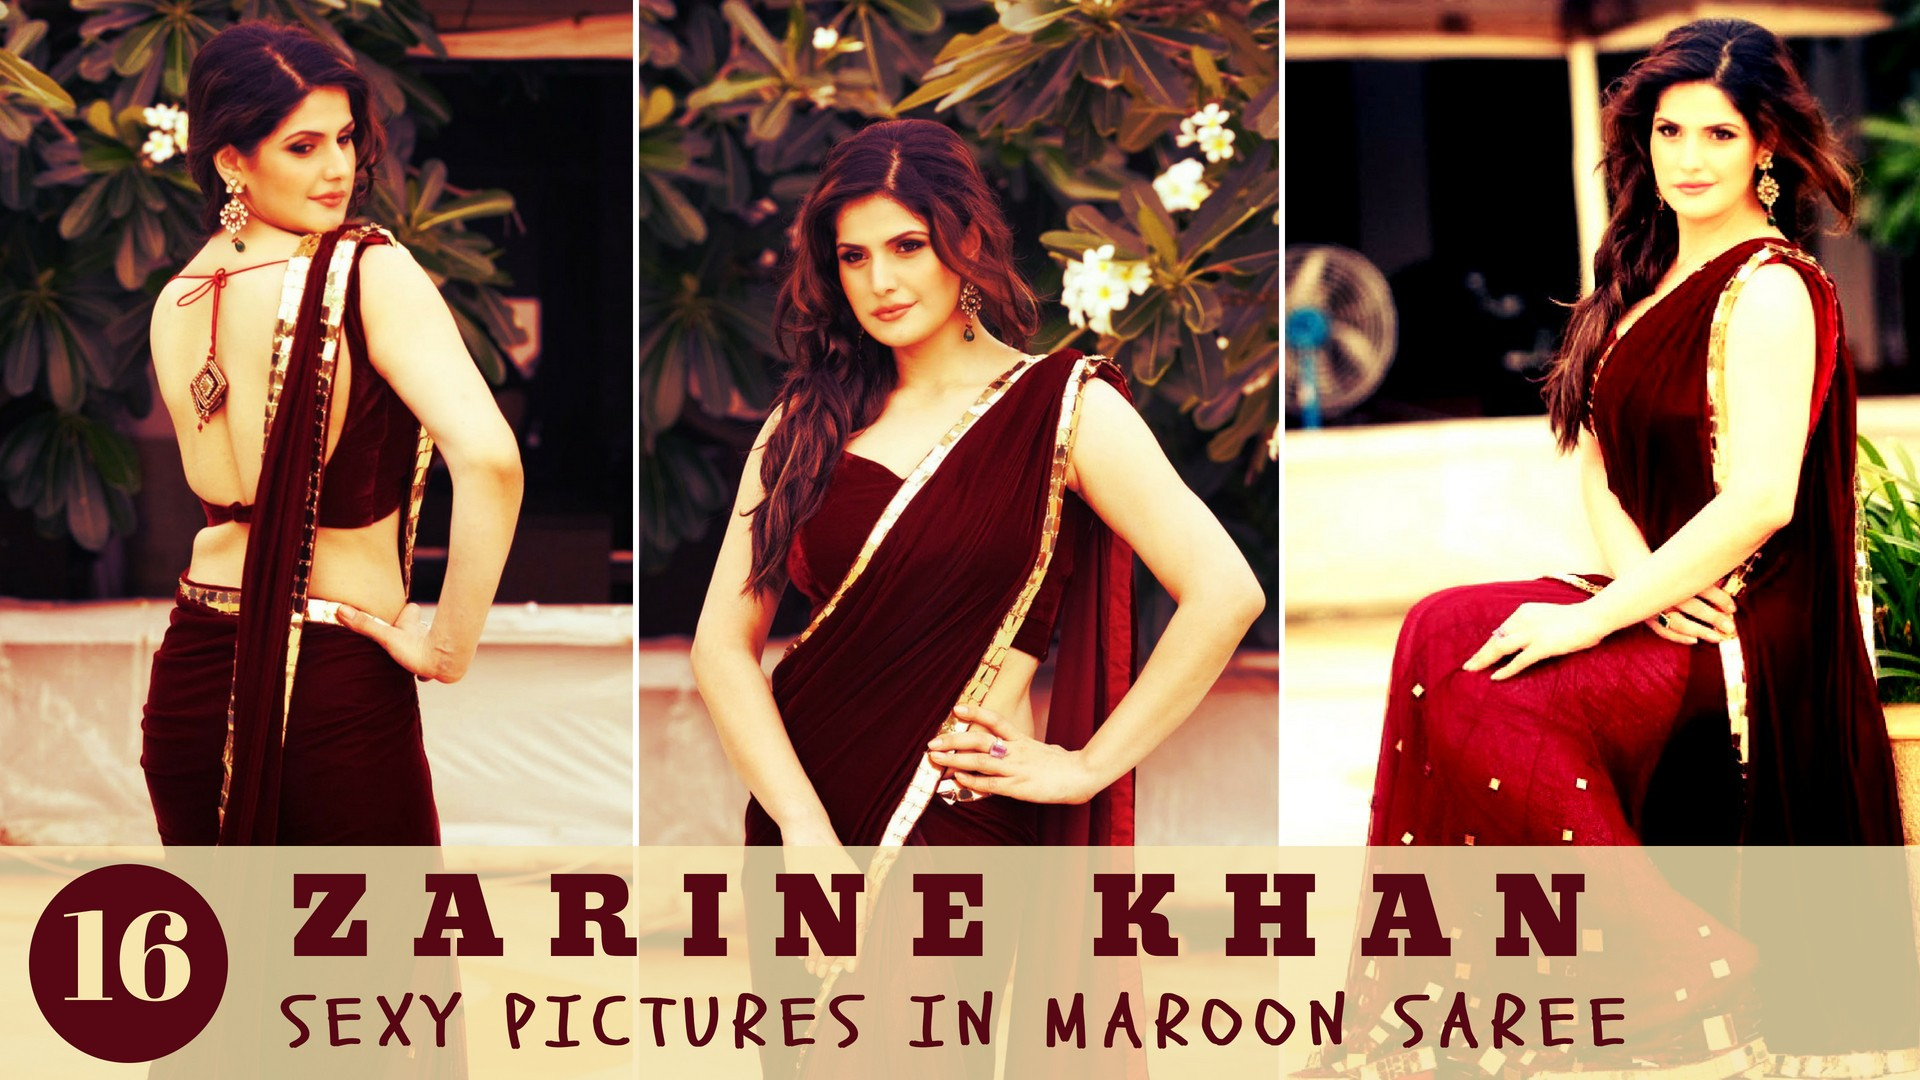 Sexy Zarine Khan Pictures in Maroon Saree - Sexy Actress Pictures | Hot Actress Pictures - ActressSnaps.com